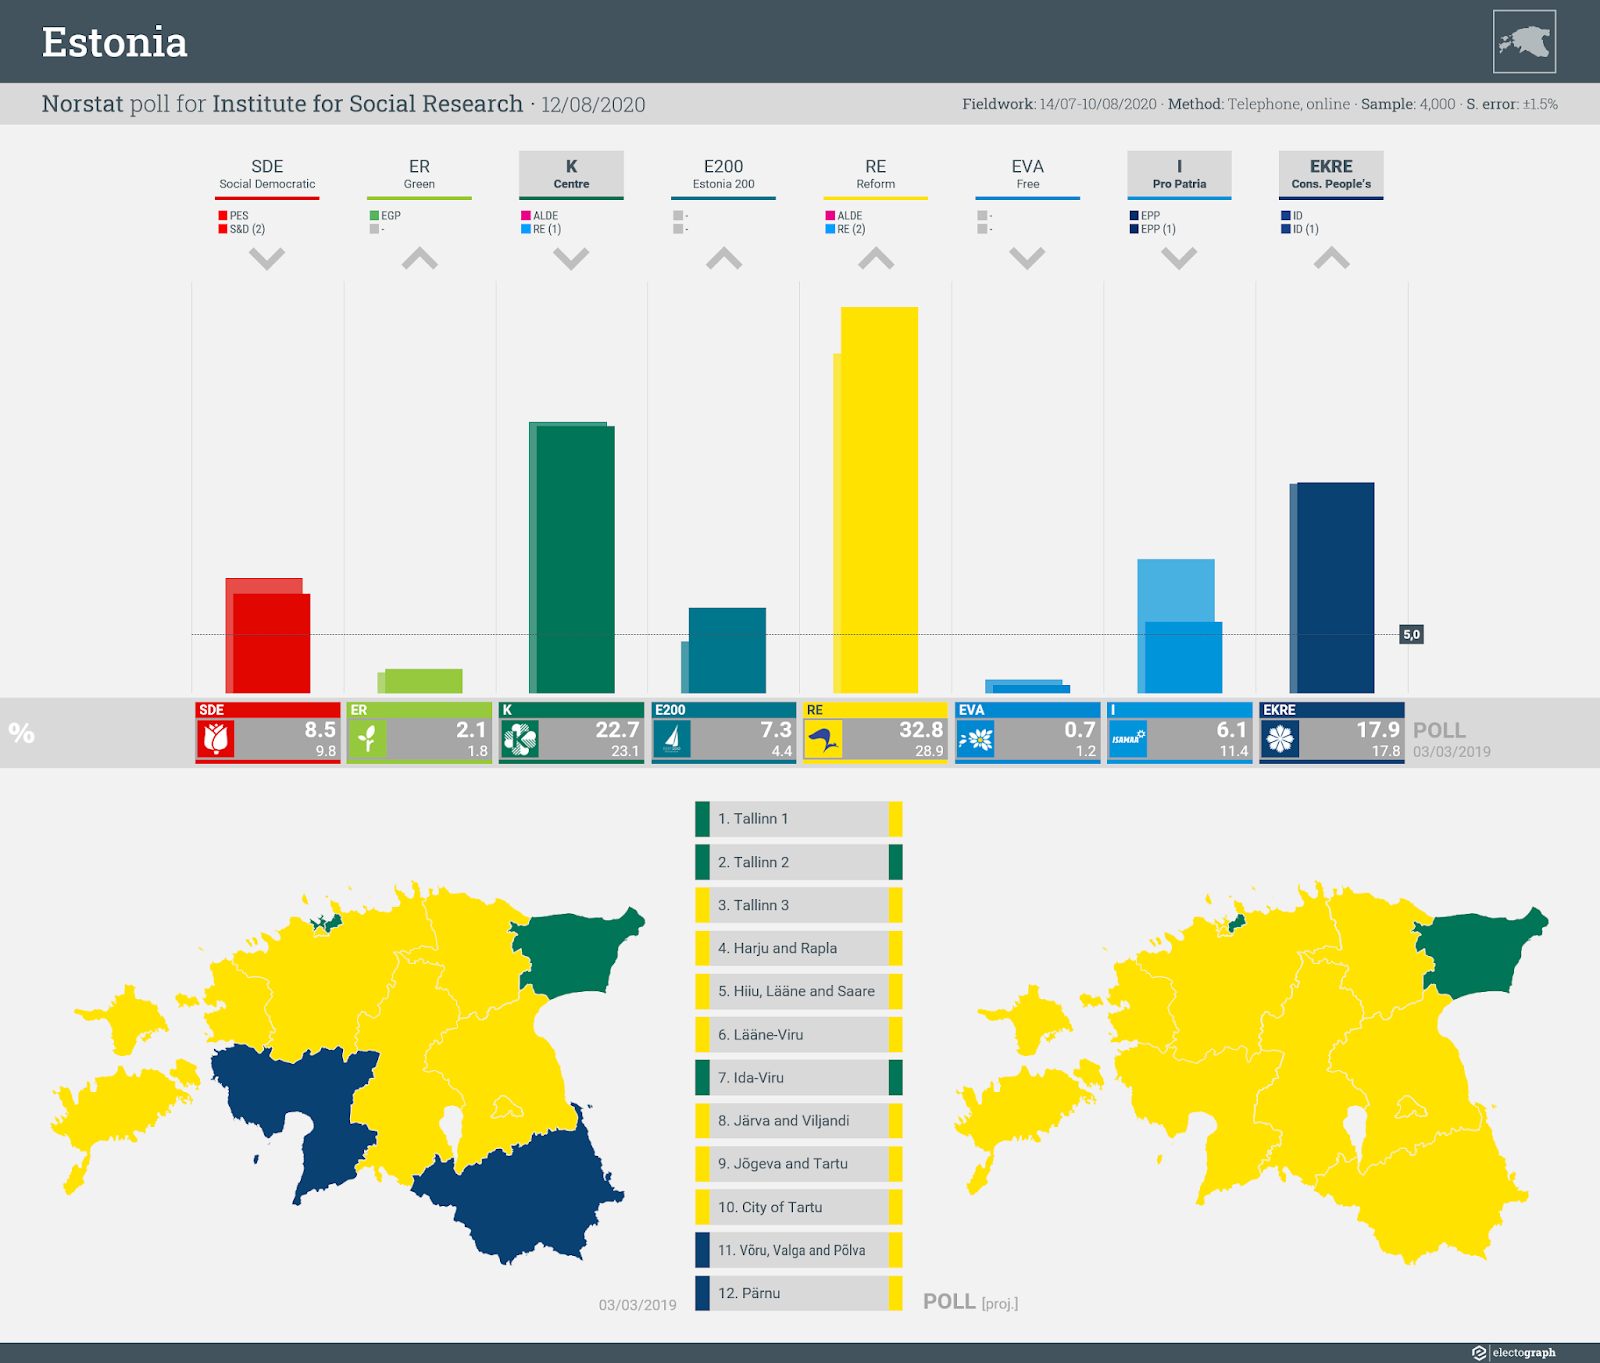 ESTONIA: Norstat poll chart for Institute for Social Research, 12 August 2020